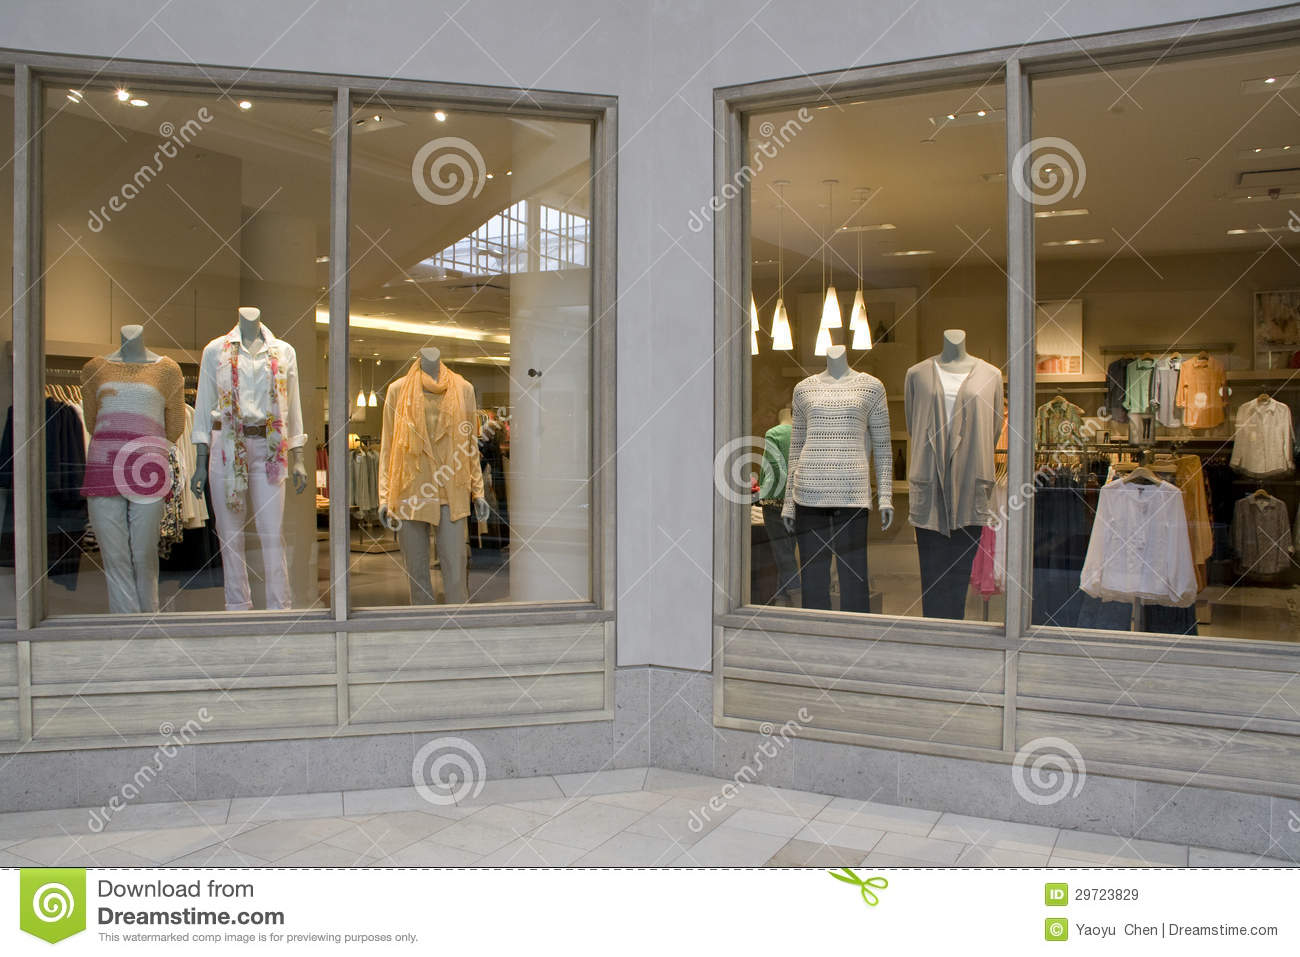 Stylish clothing store at Bellevue Square Mall